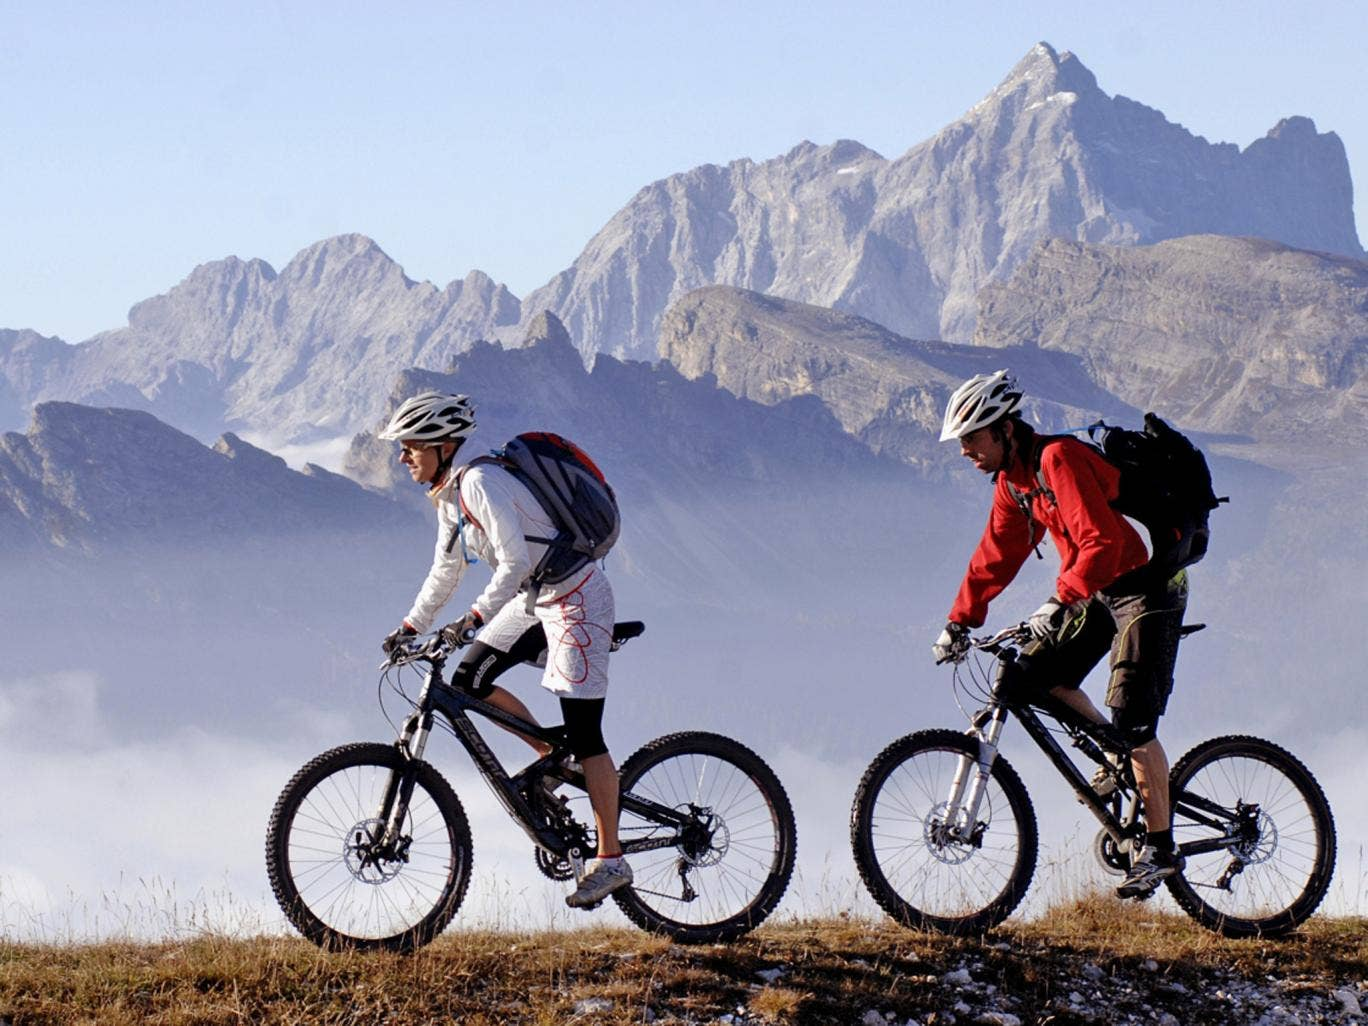 Go for a spin: cycling in the Faloria ski area